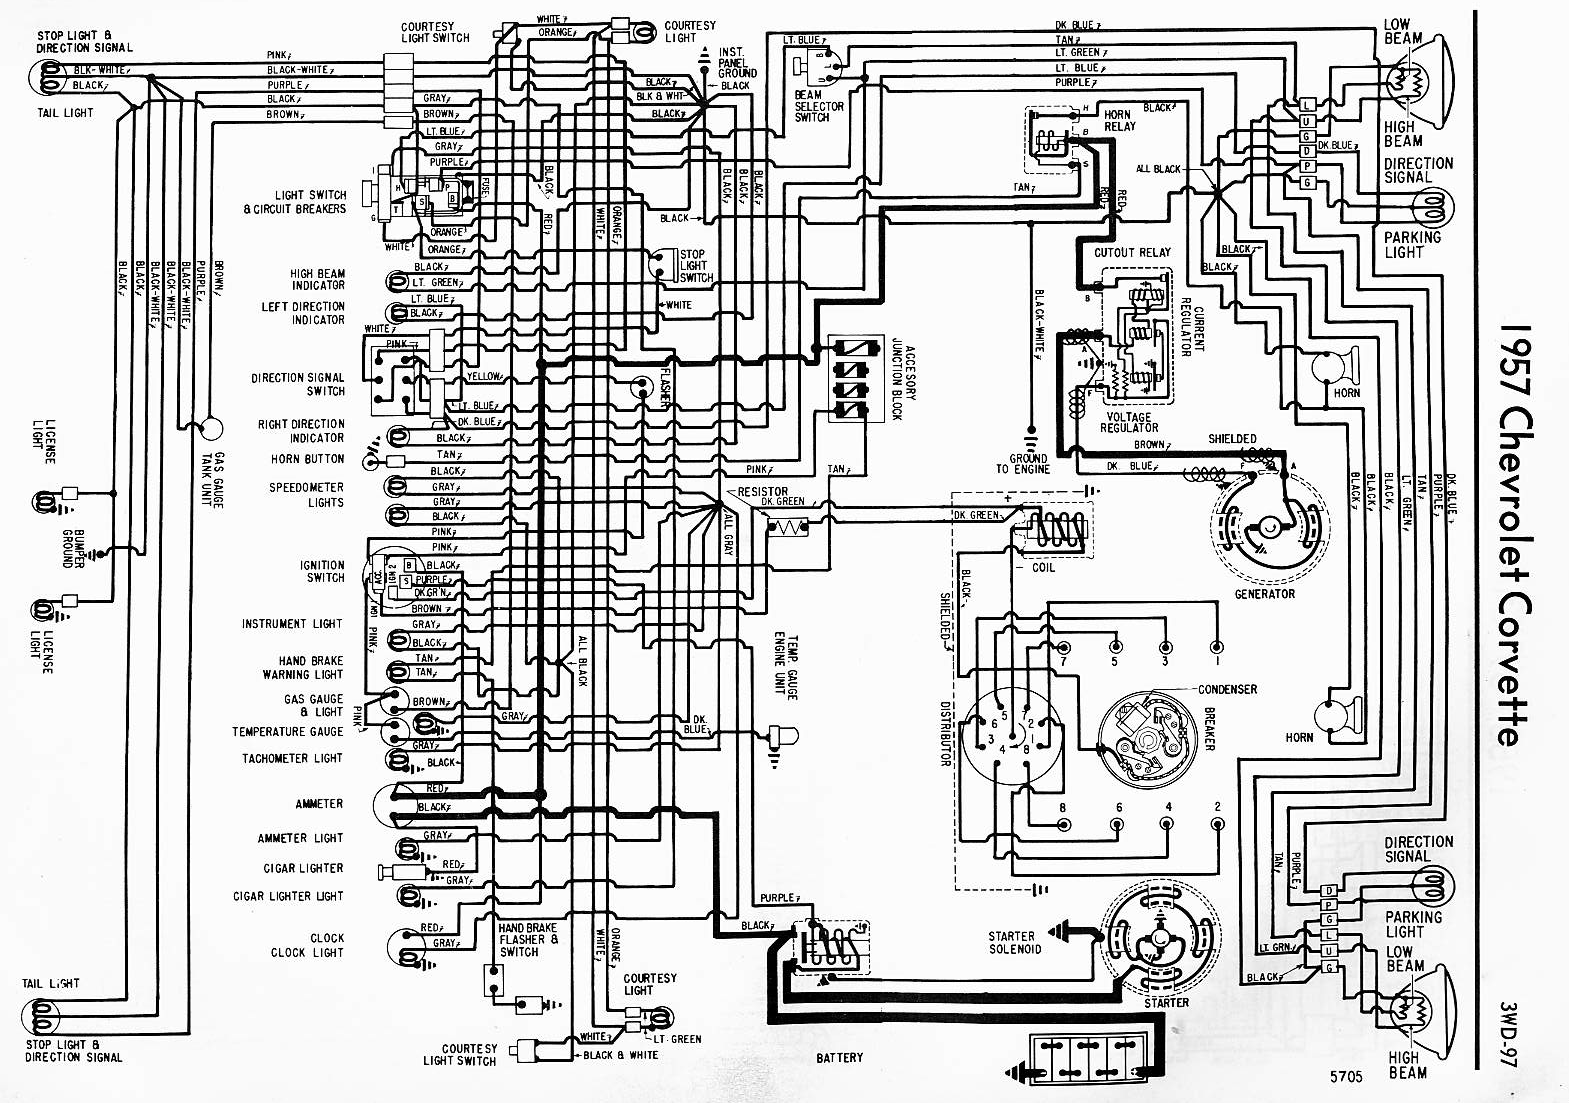 1979 corvette starter wiring diagram 7 pin flat caravan plug 1957 fuel gauge corvetteforum chevrolet